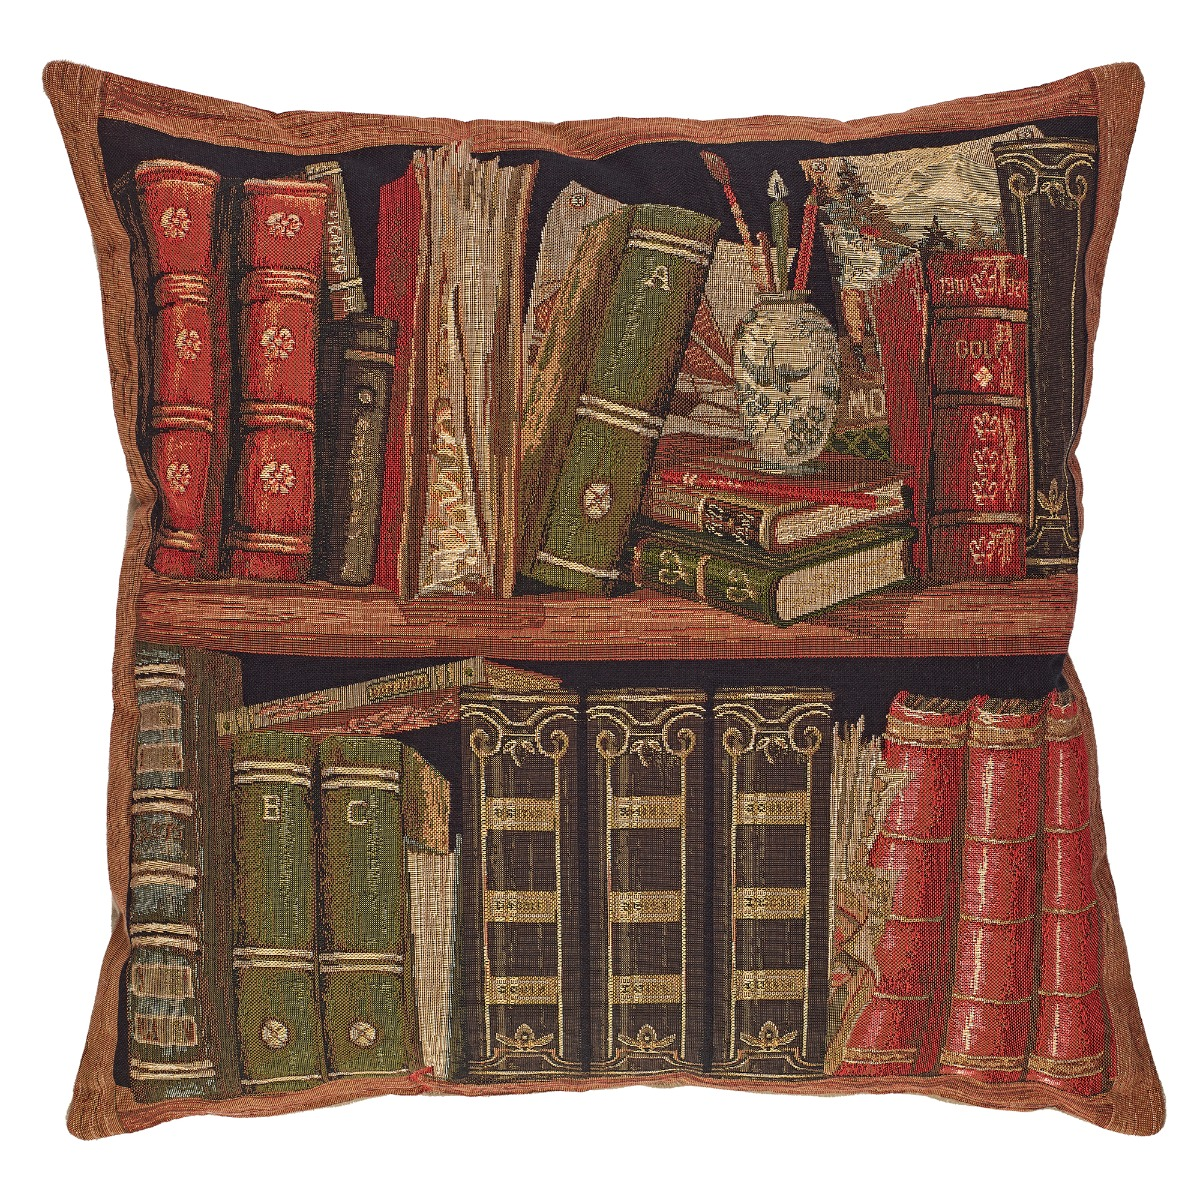 Tapestry library III cushion cover